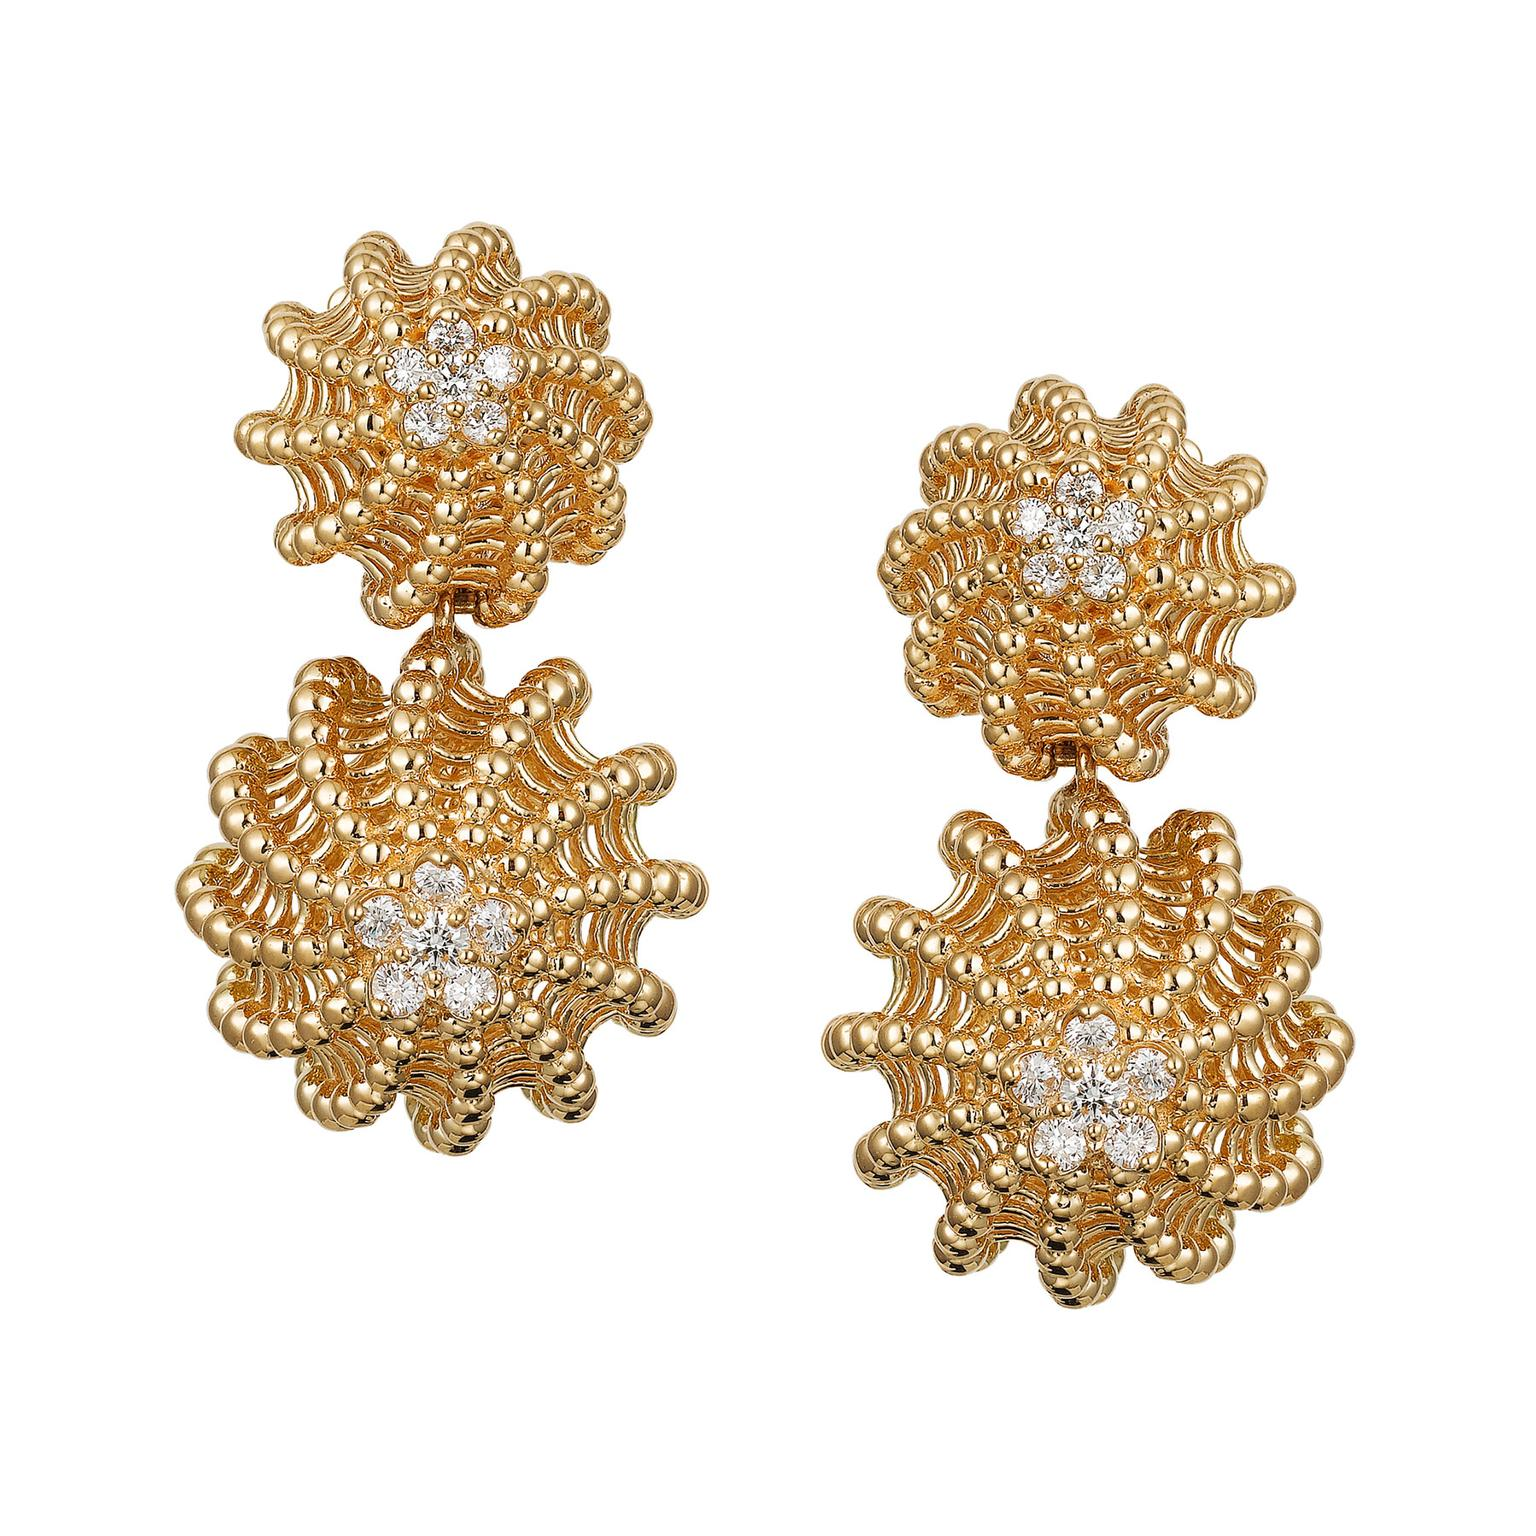 Cactus de Cartier earrings in yellow gold with diamonds